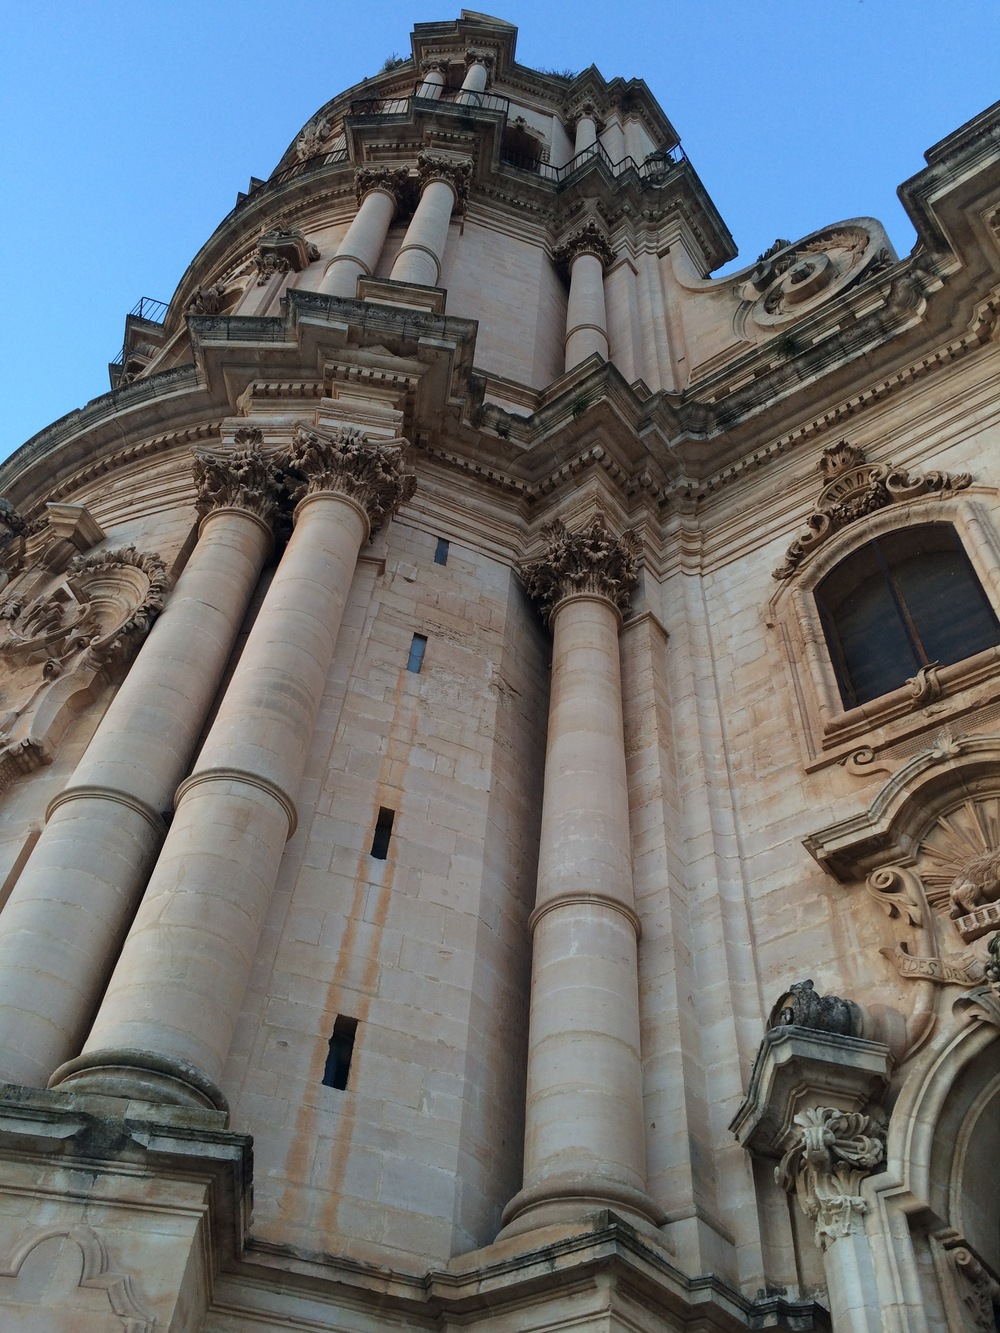 A taste of the voluptuous curves of San Giorgio in Modica